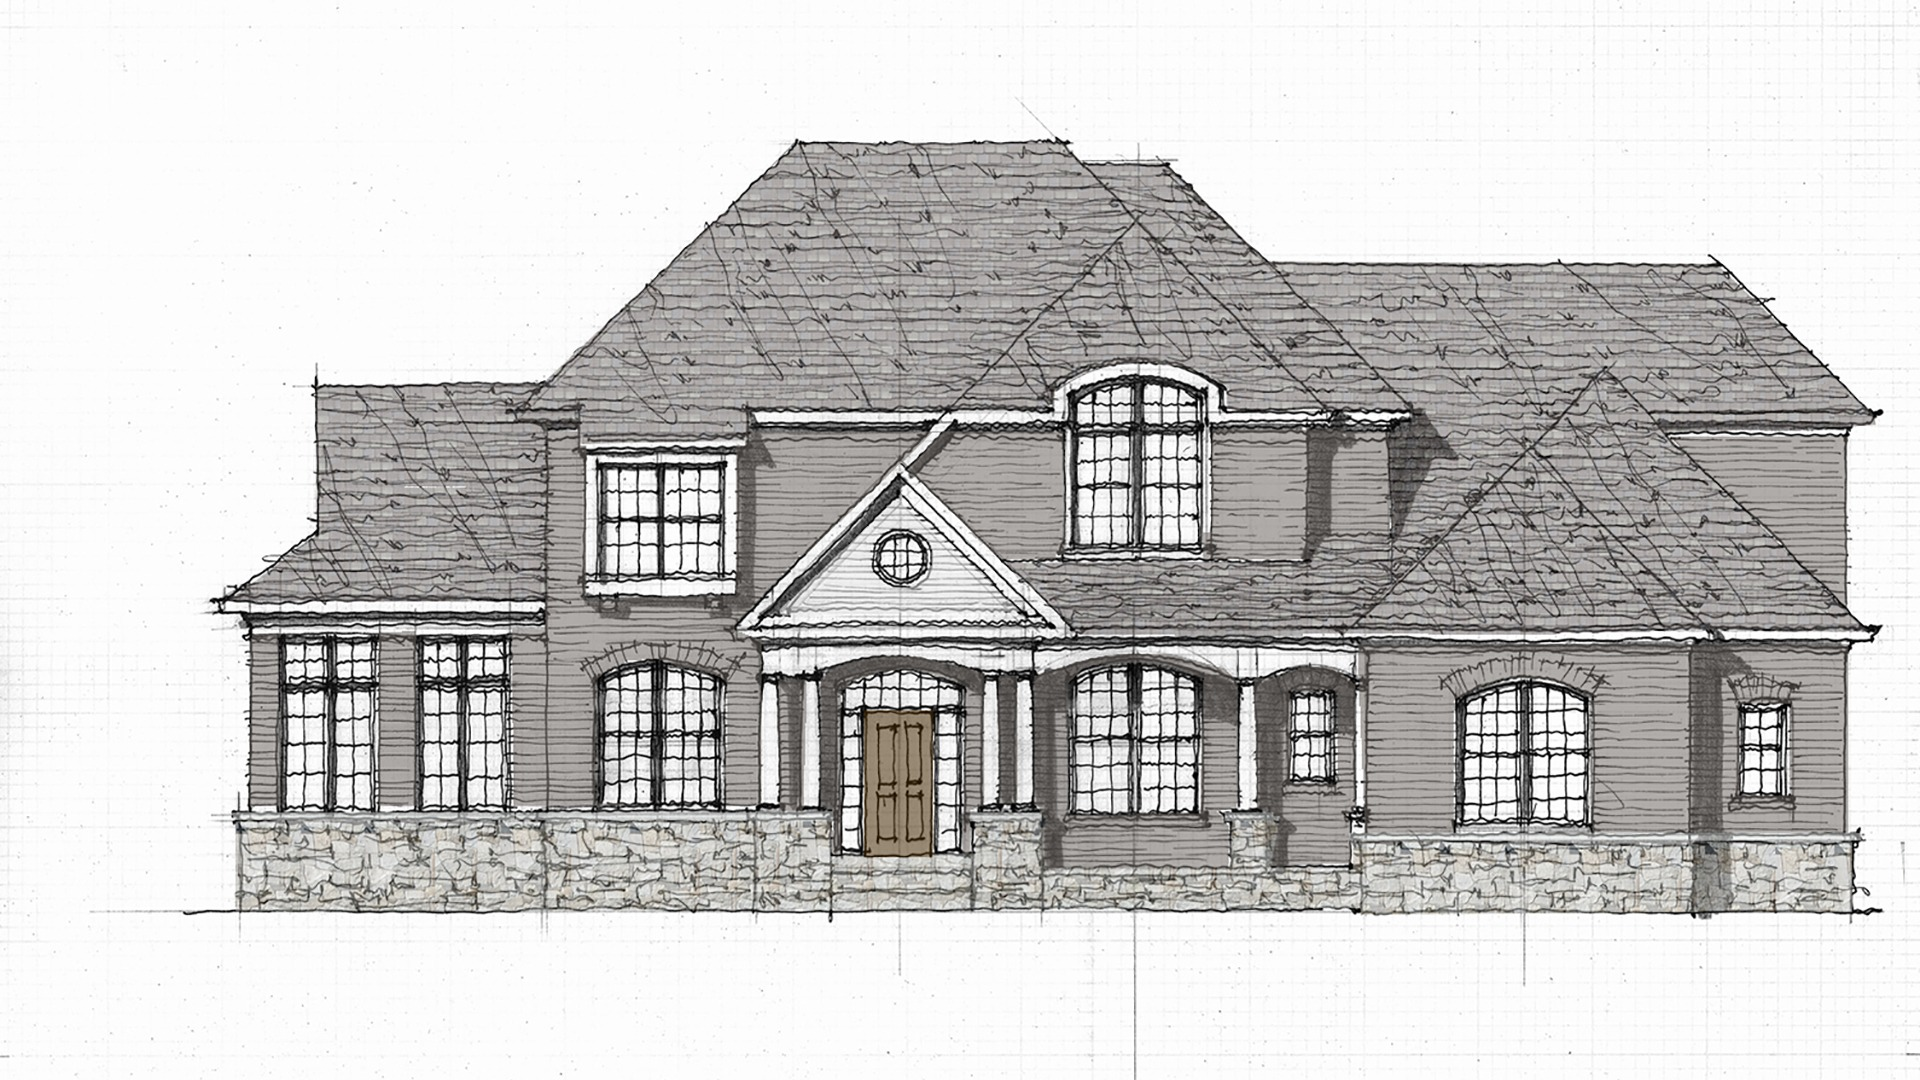 Newly designed elevation and color concept for the Grayson for introduction into our Signature Series.